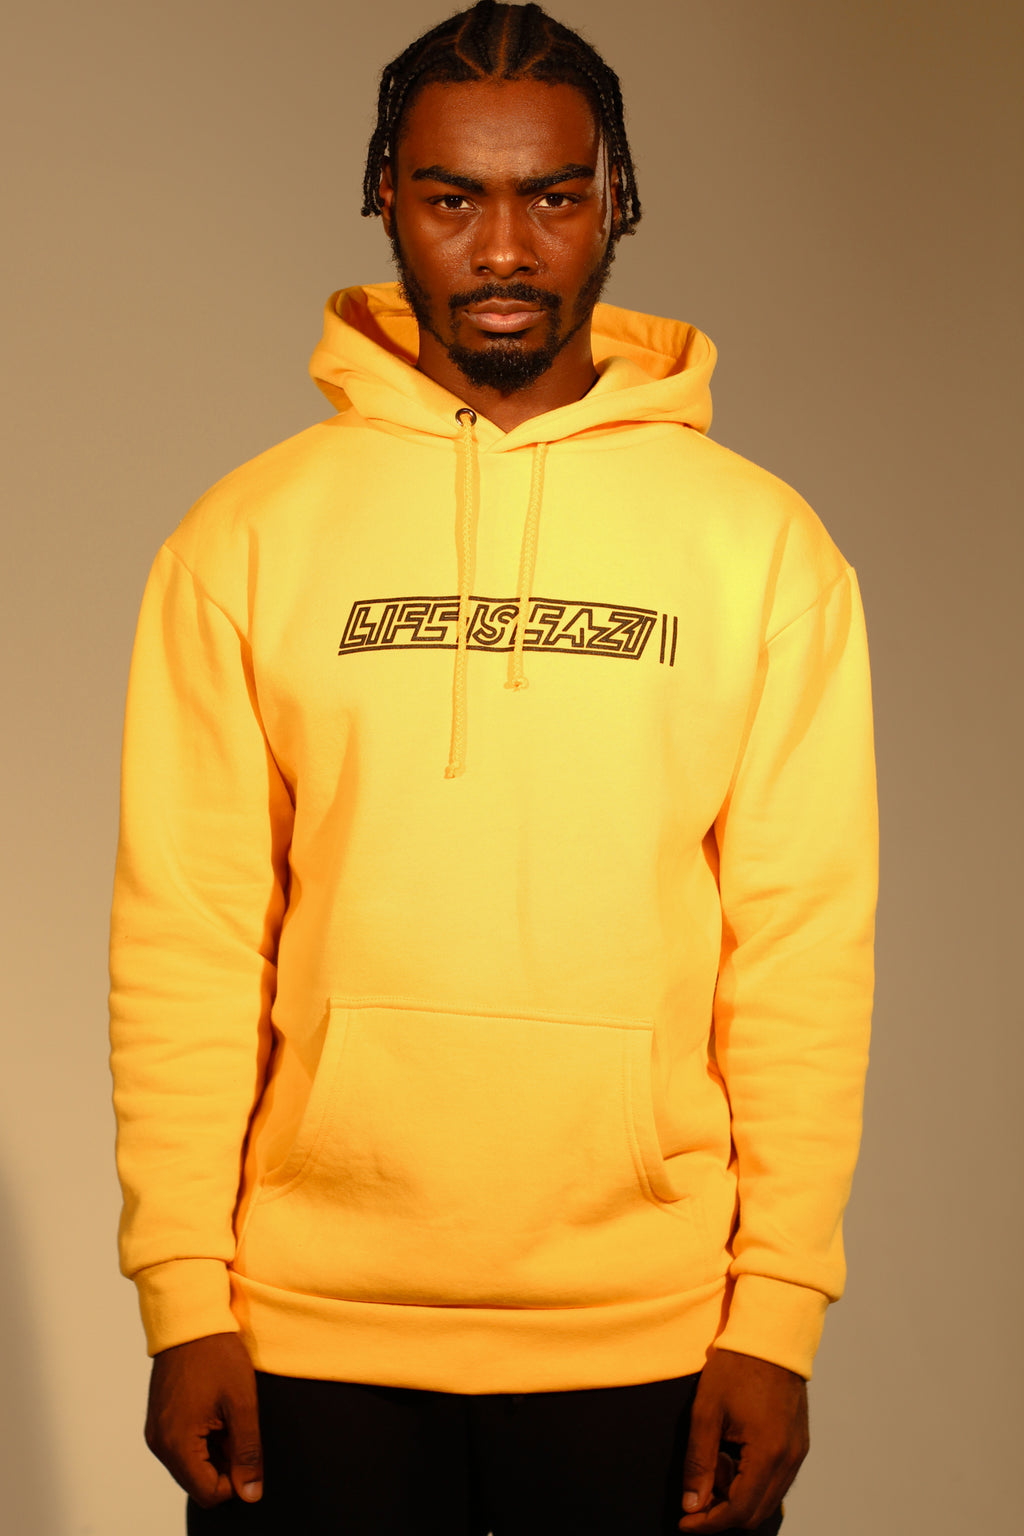 YELLOW HOODY - LIFE IS EAZI